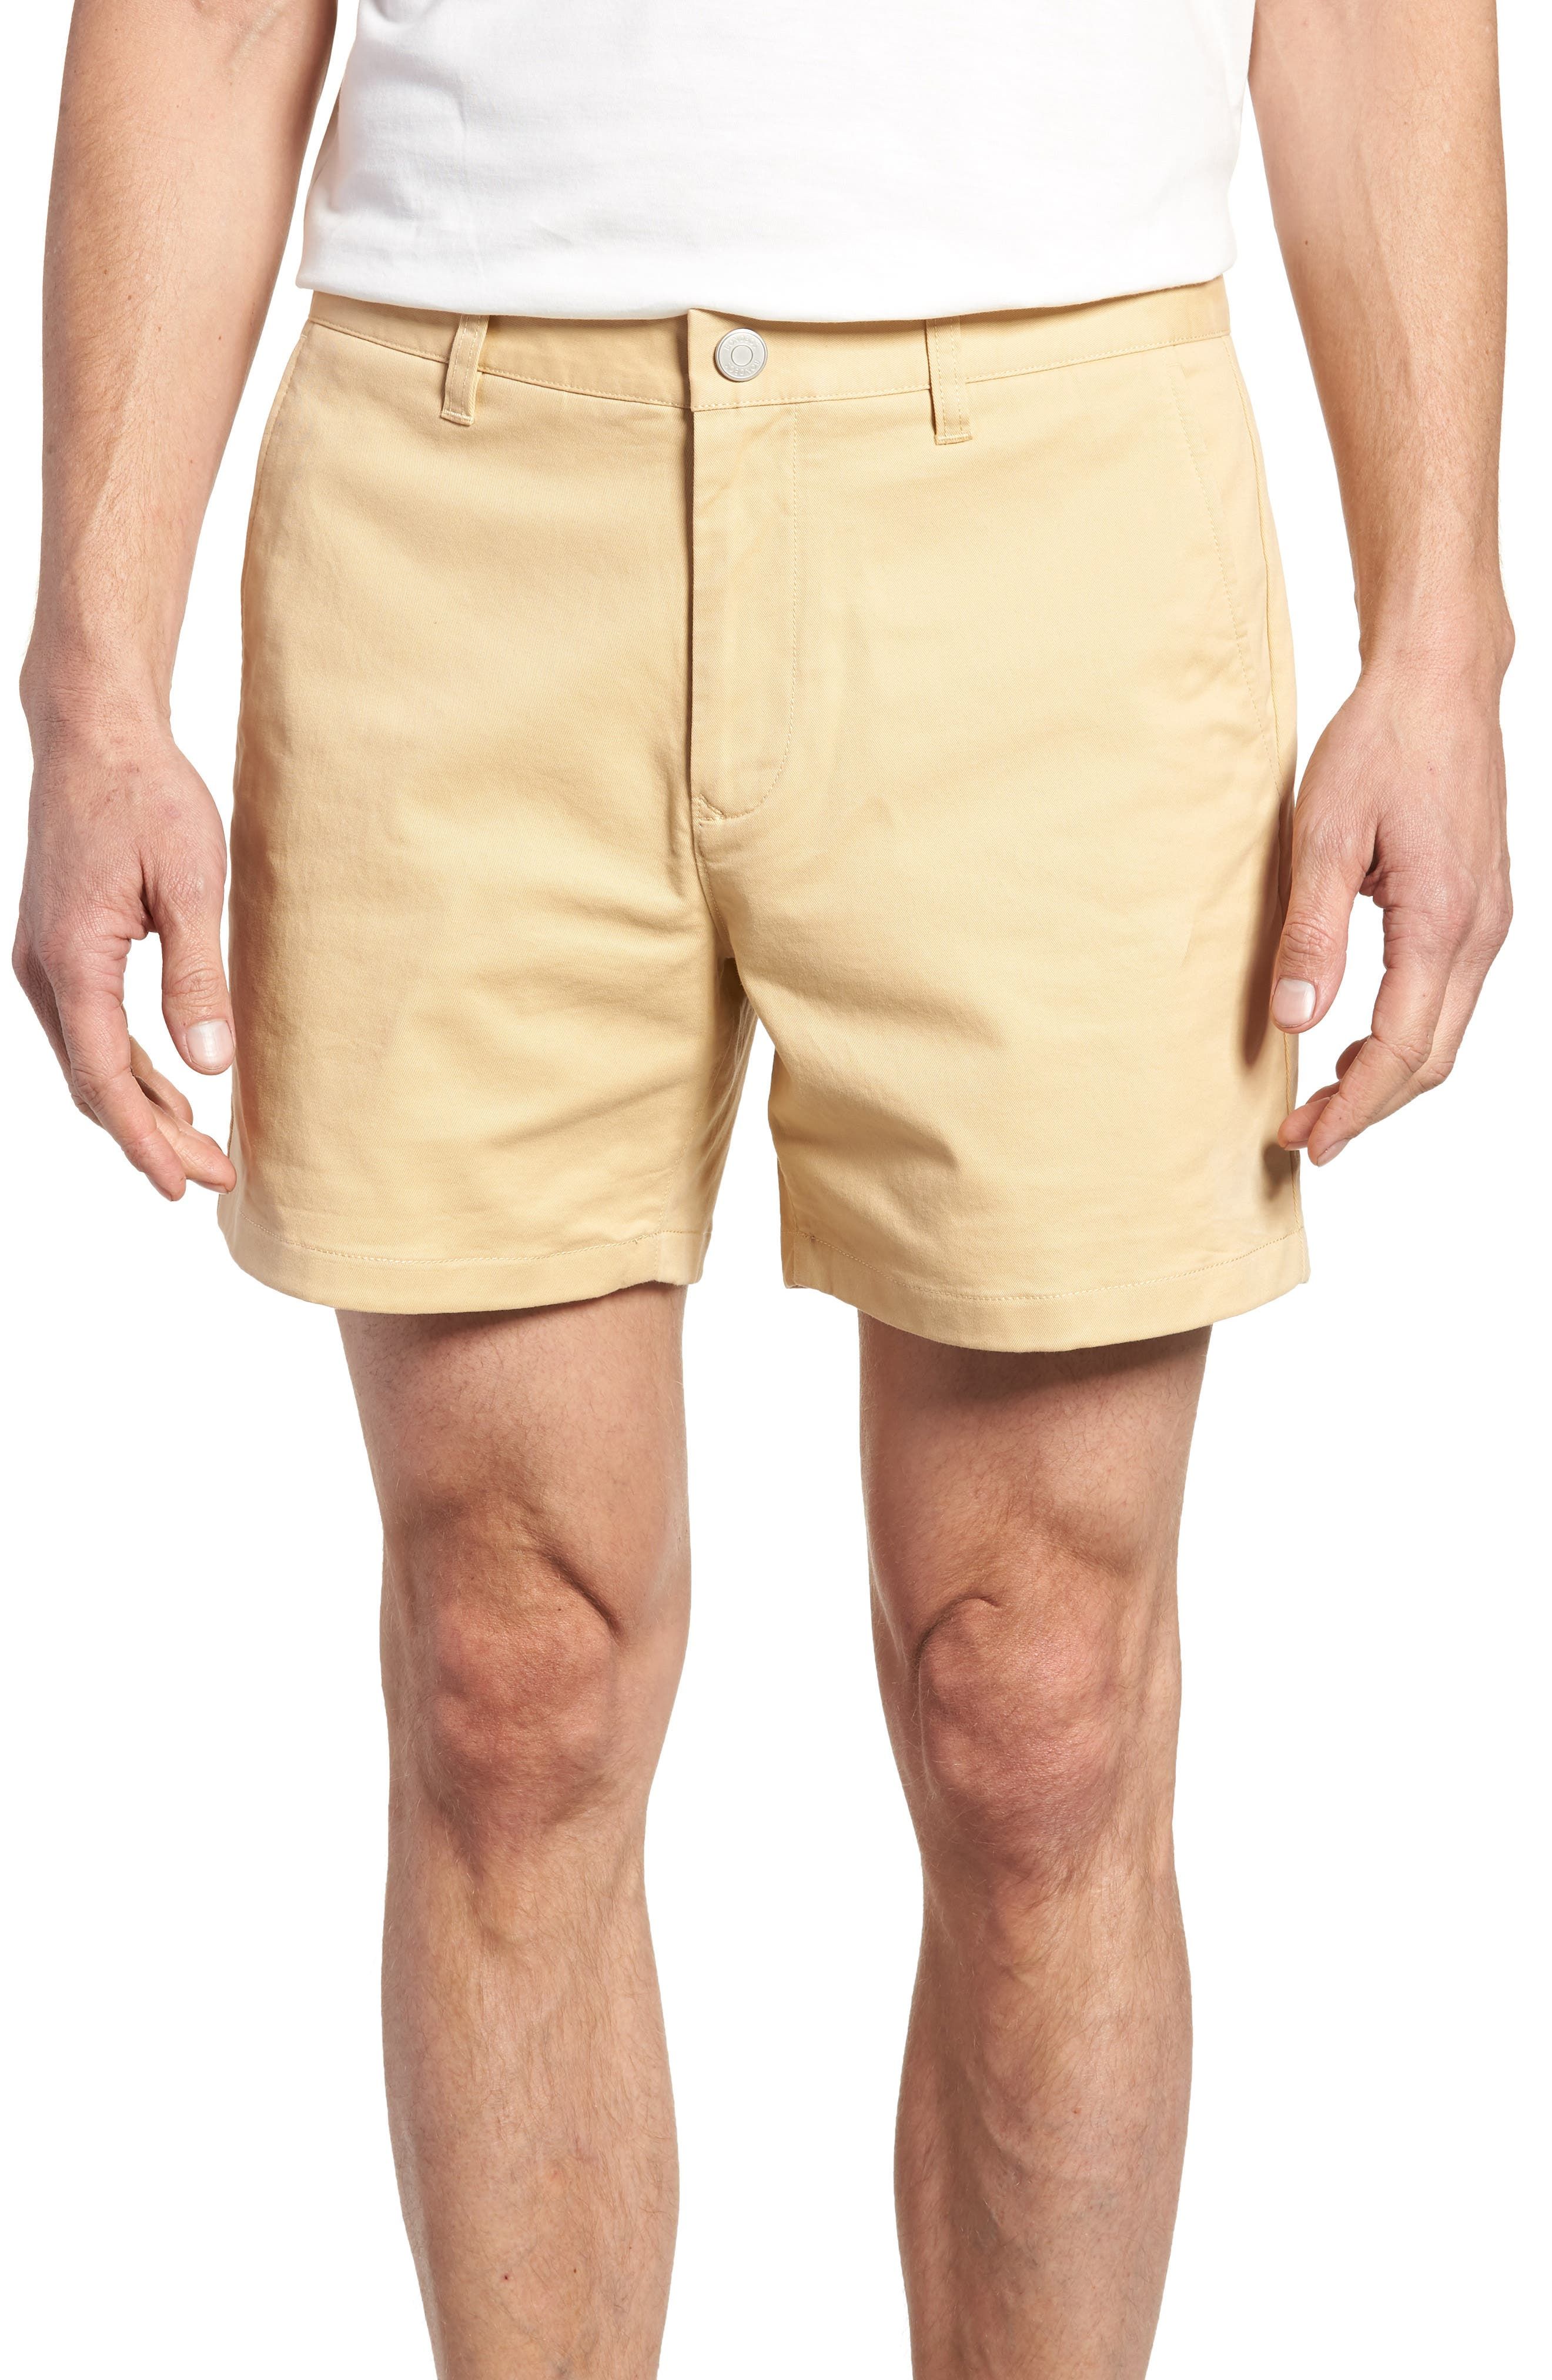 Stretch Washed Chino 5-Inch Shorts,                         Main,                         color, Gold Khaki